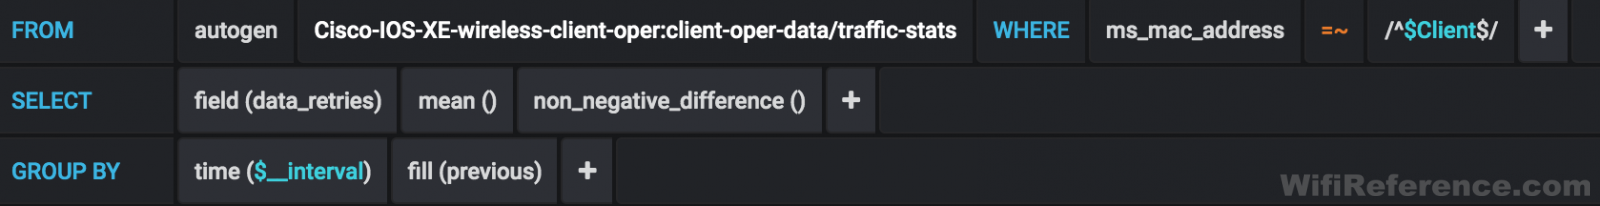 Grafana client data retries query